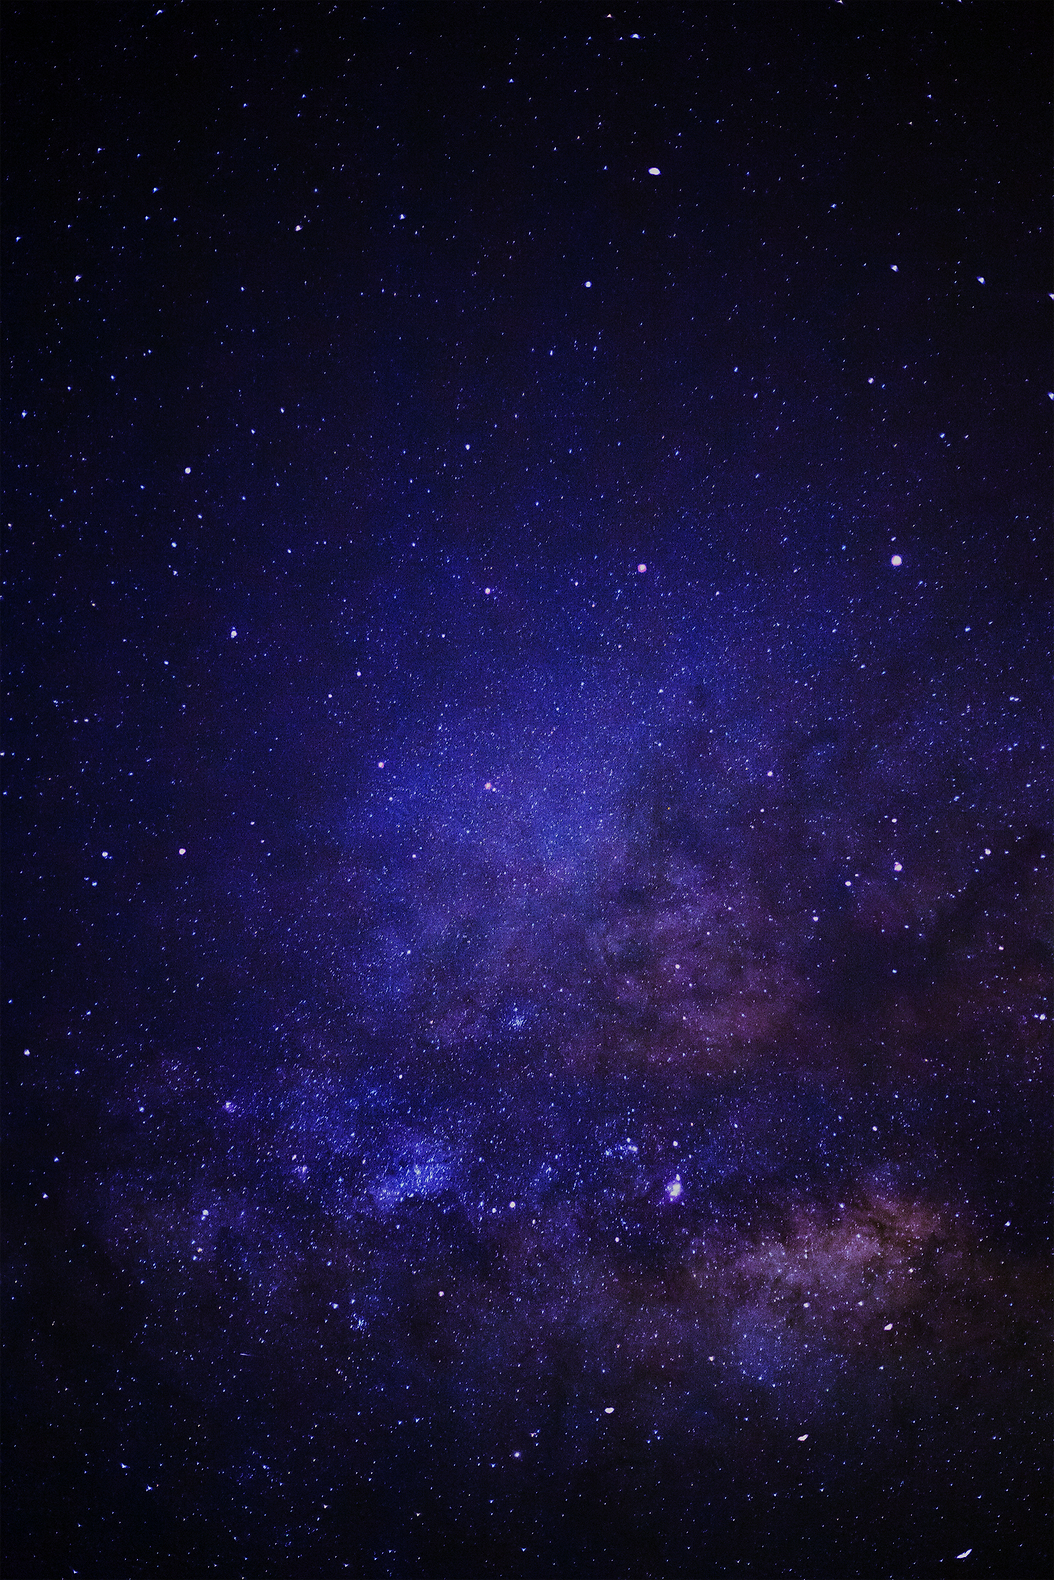 Galaxy_Wix_edited.png